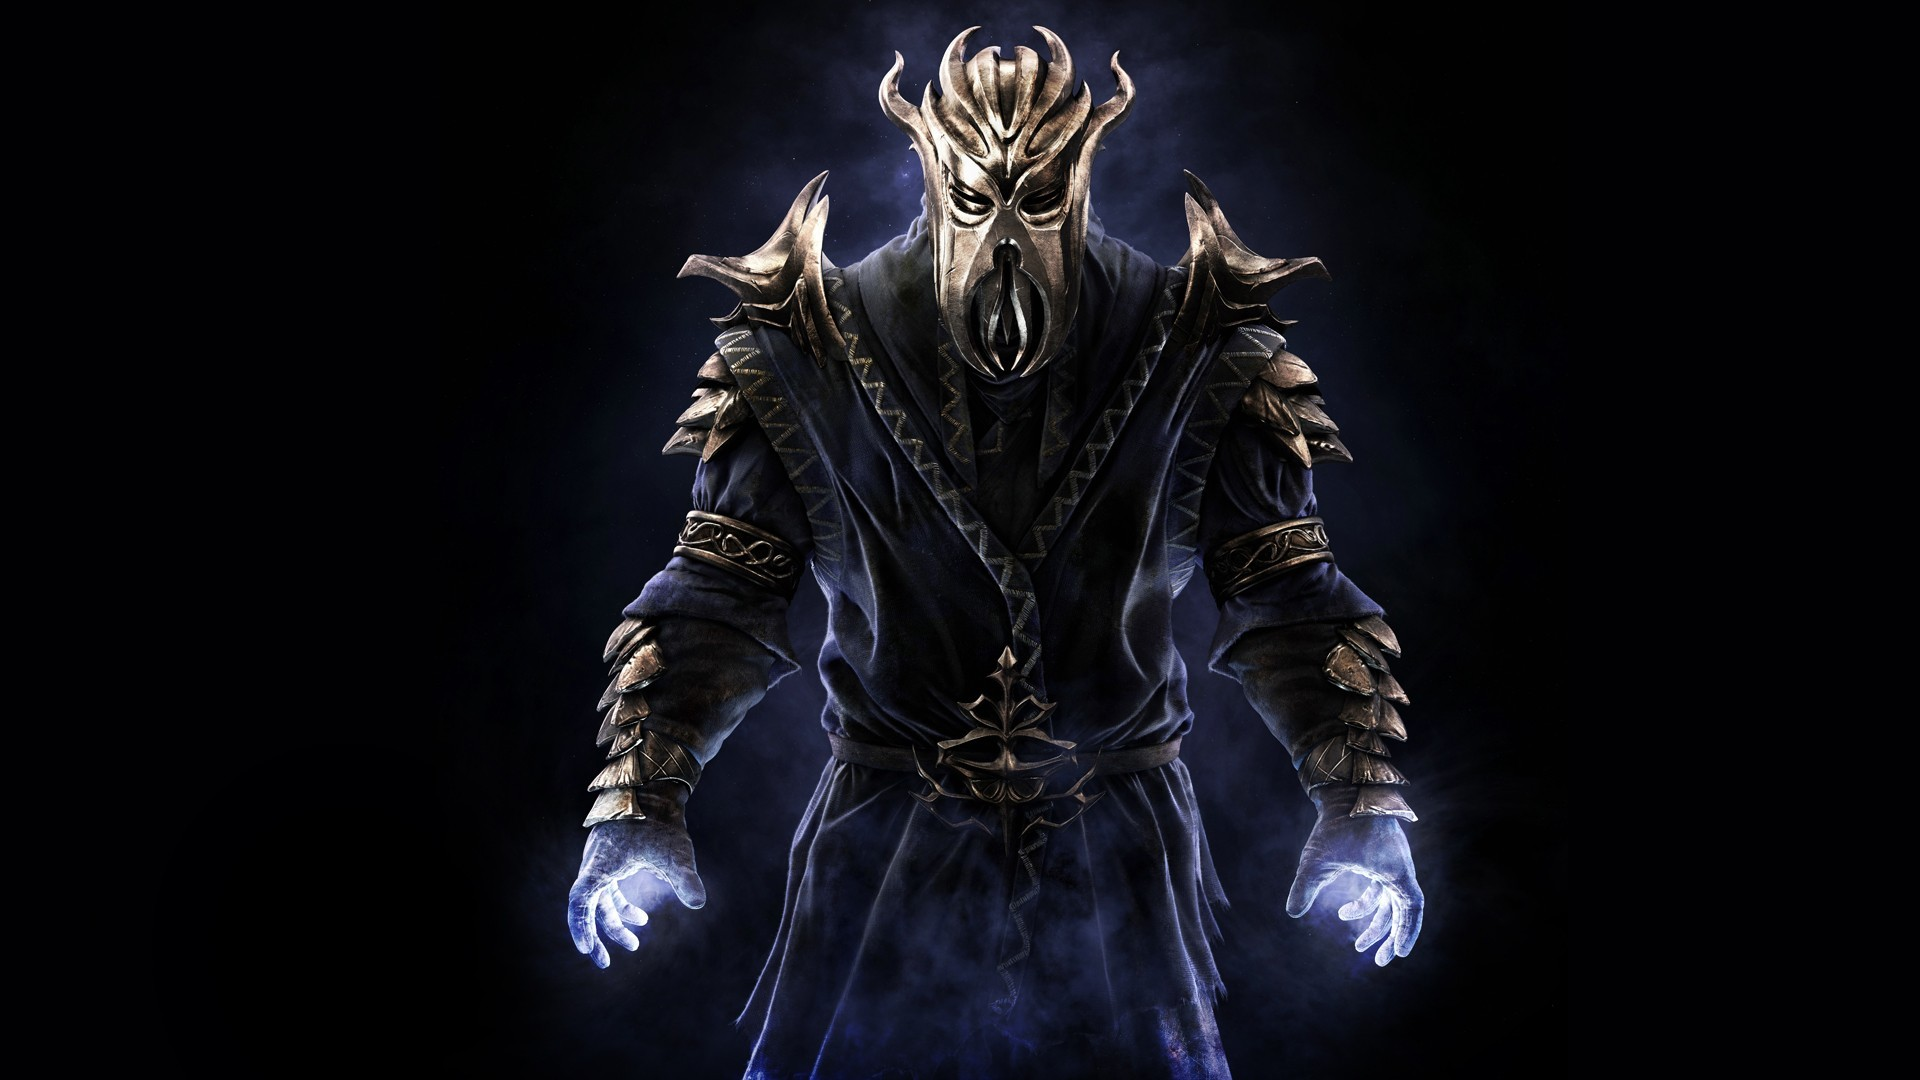 Wallpaper The Elder Scrolls V: Skyrim warder